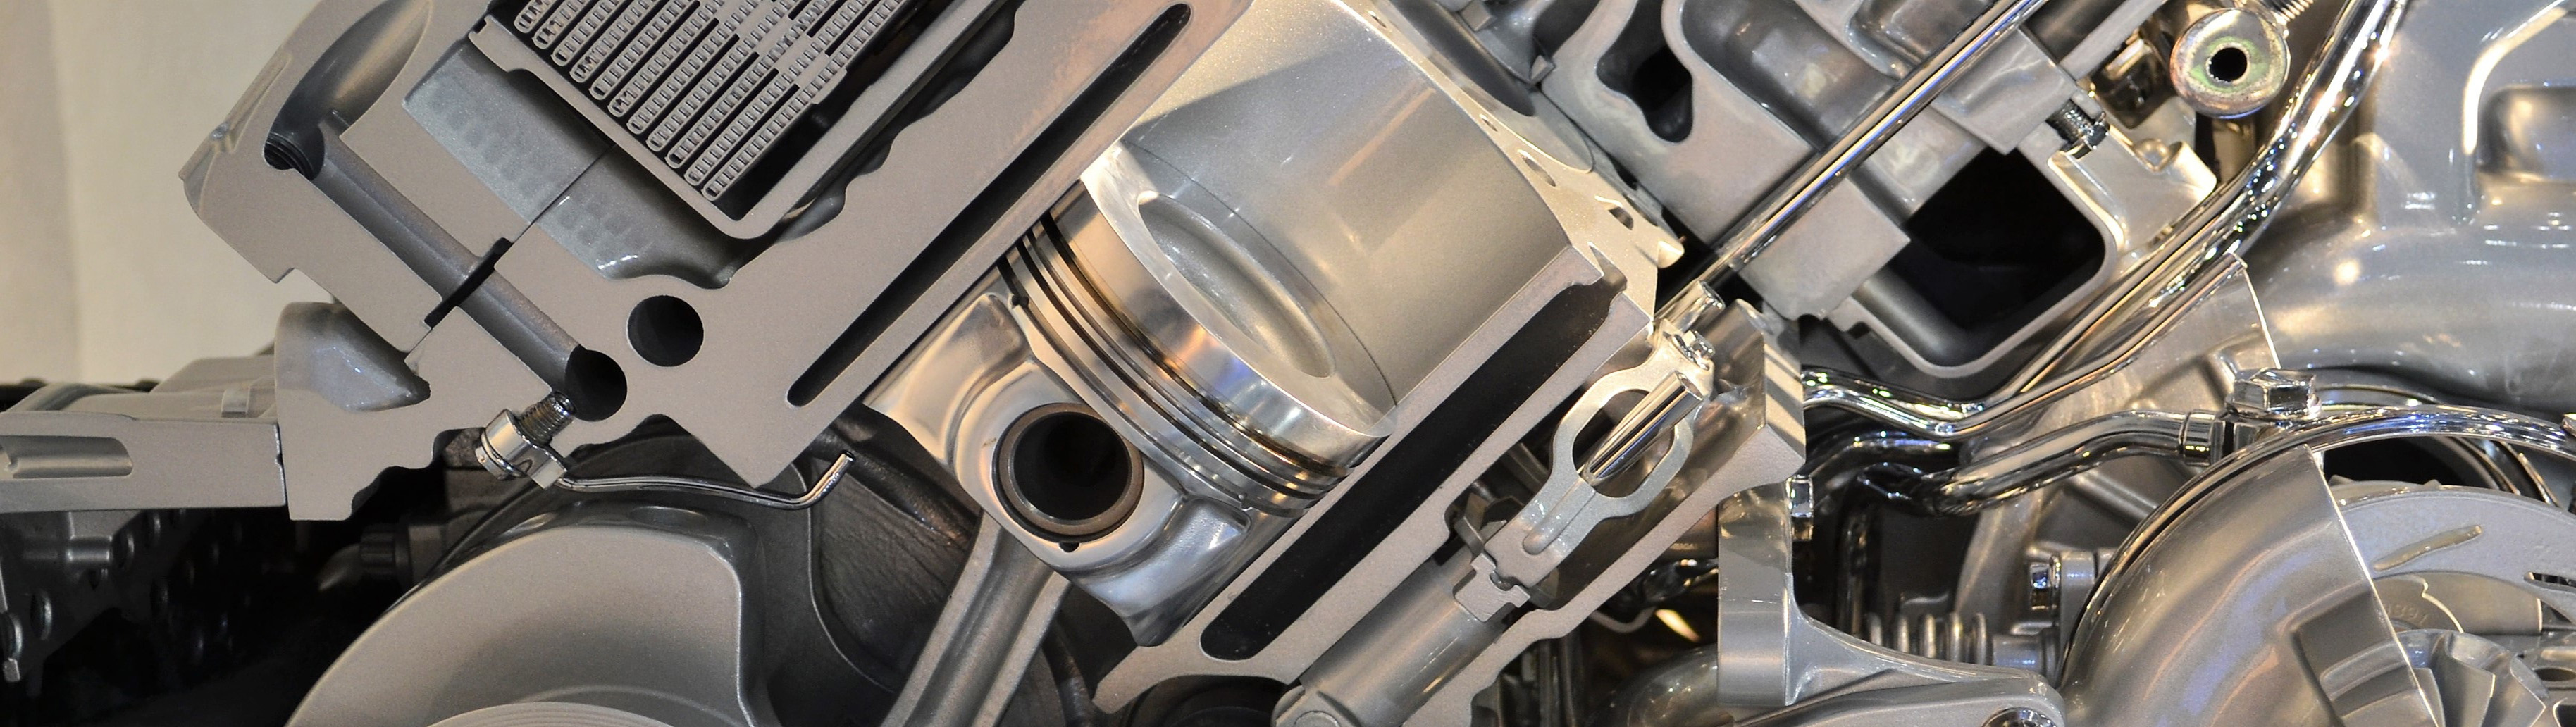 The Best Engine Oils Filters Of 2018 Complete Buyers Guide Deisel Fuel Filter Mann Bases This Article Will Help You Choose Oil For Your Car And Provide With All Important Information On What To Look